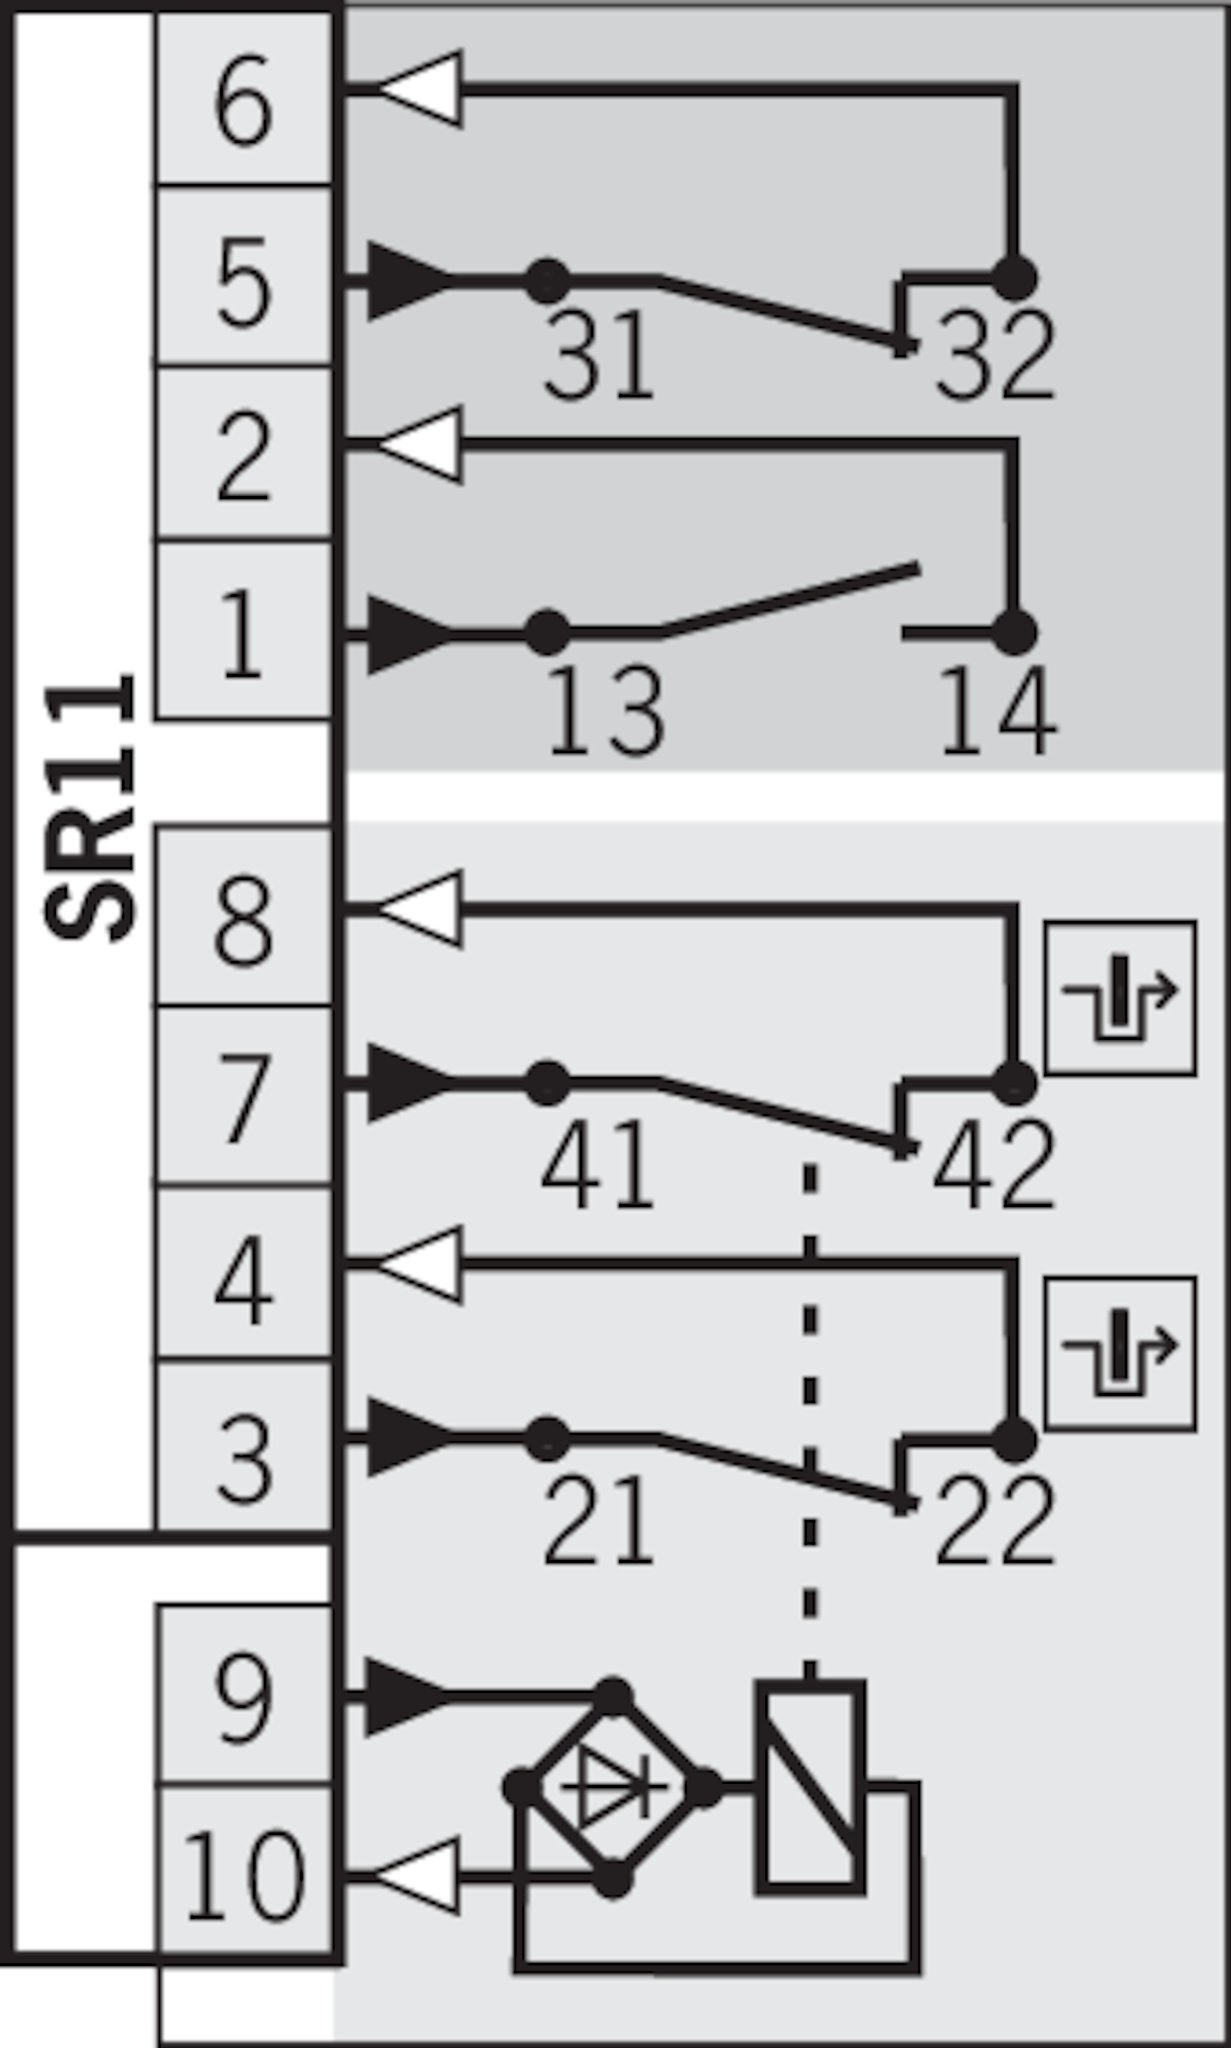 stp3 wiring diagram stp3a-4121a024sr11   euchner – more than safety. fuel pump wiring diagram for 1996 mustang